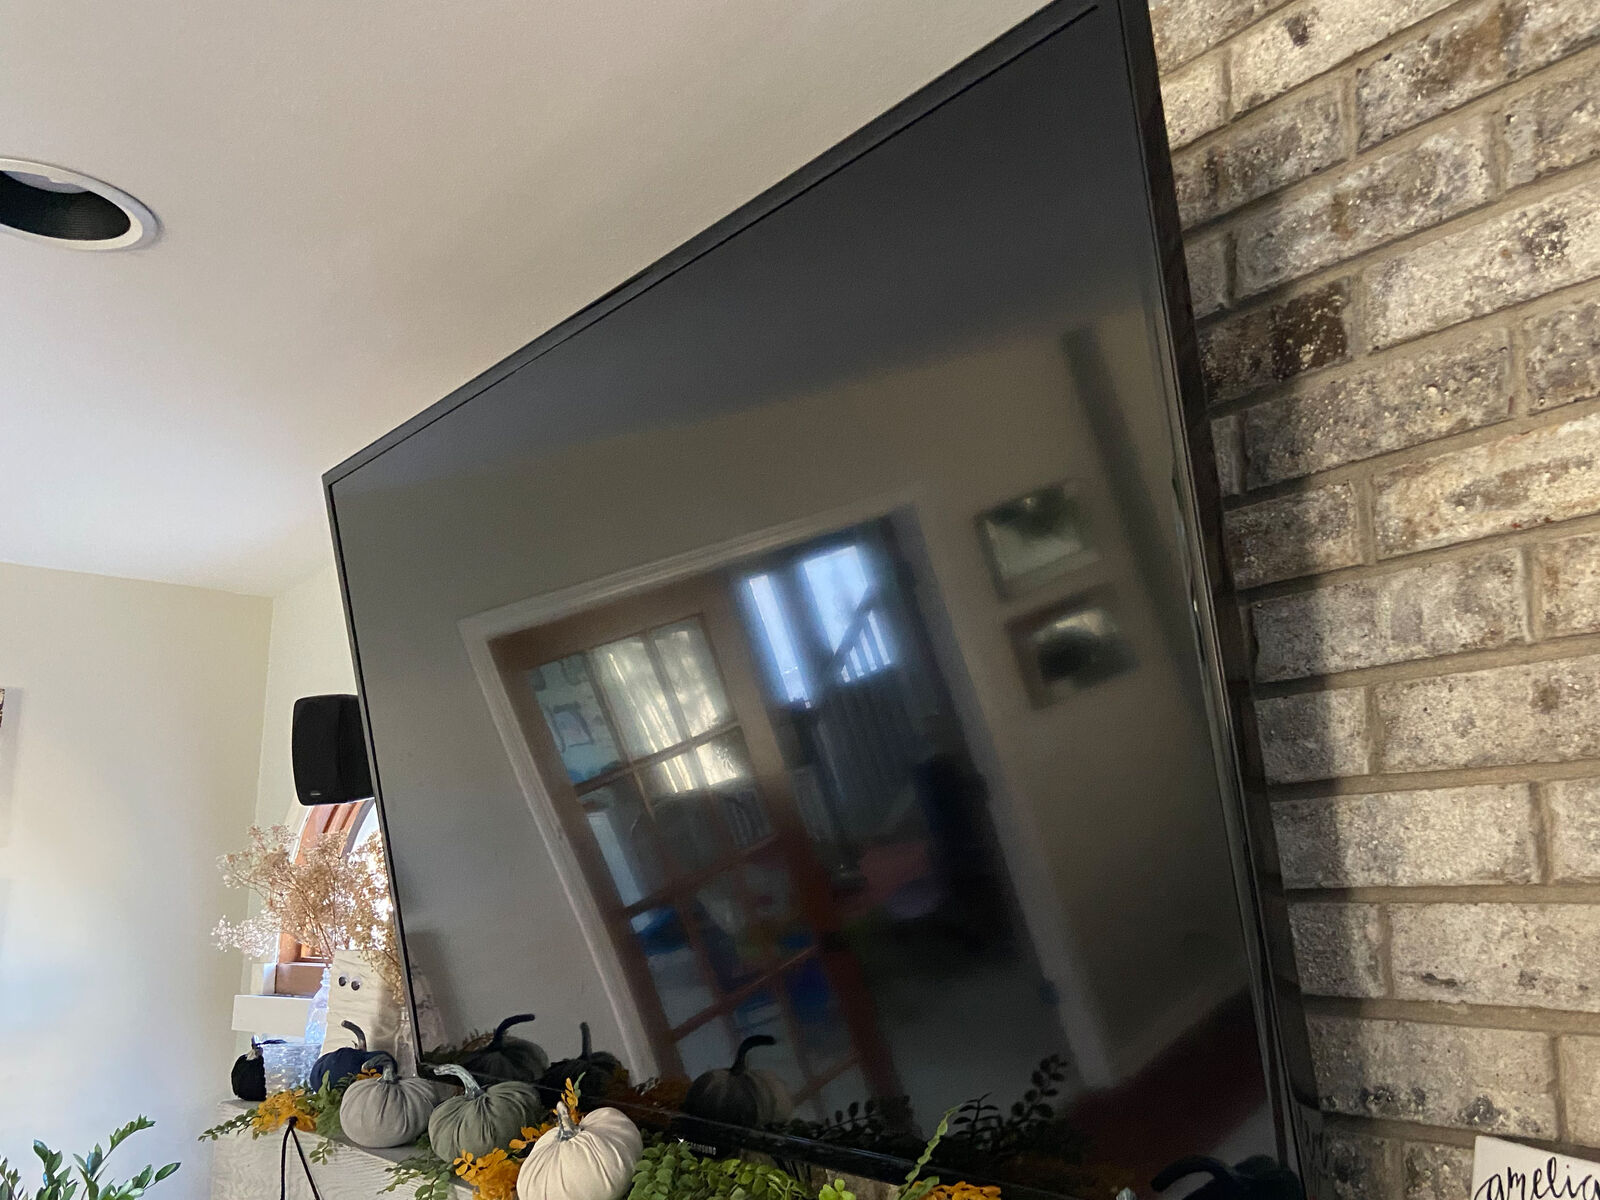 TV mounted to masonry above a fireplace